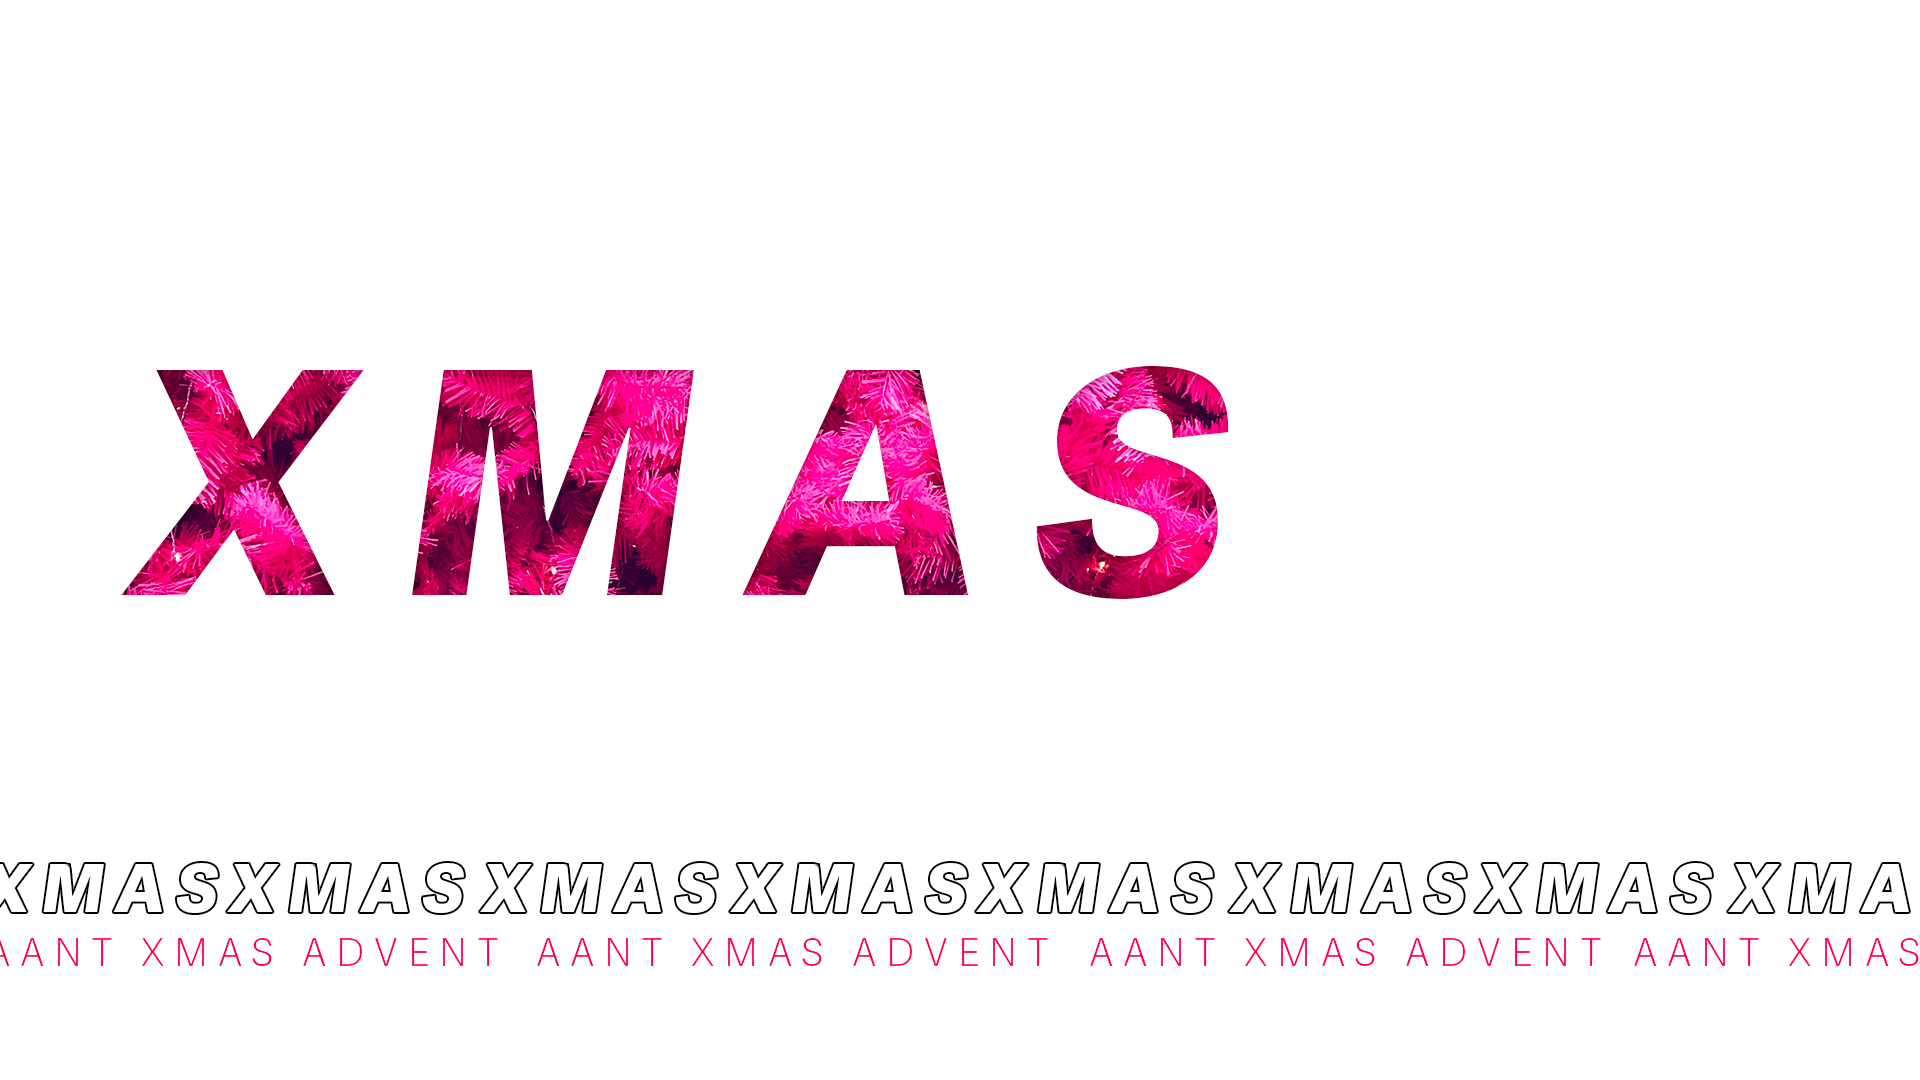 AANT XMAS ADVENT